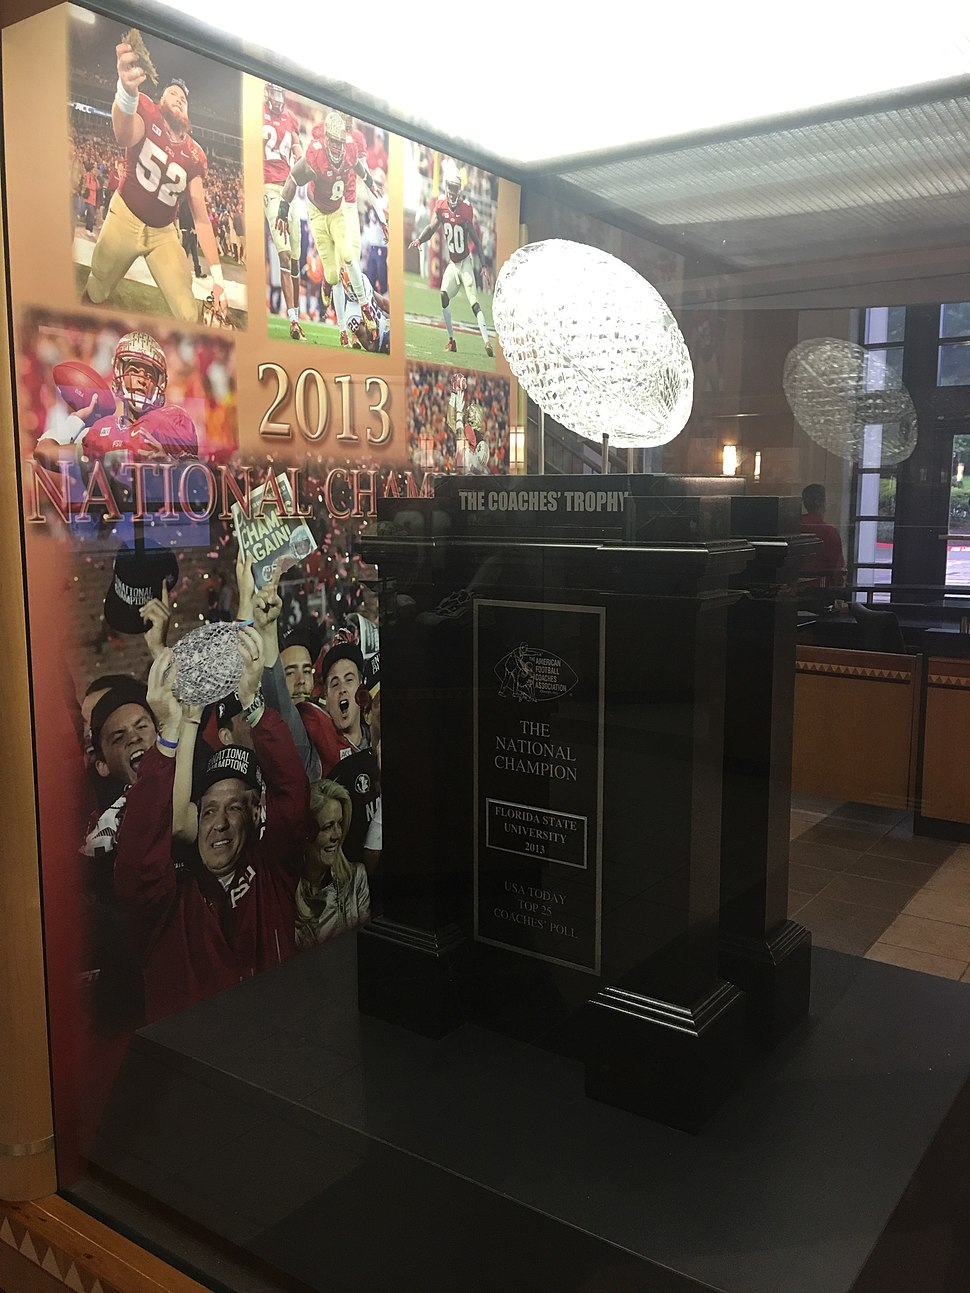 The 2013 College Football National Championship Trophy display at the Moore Athletic Center